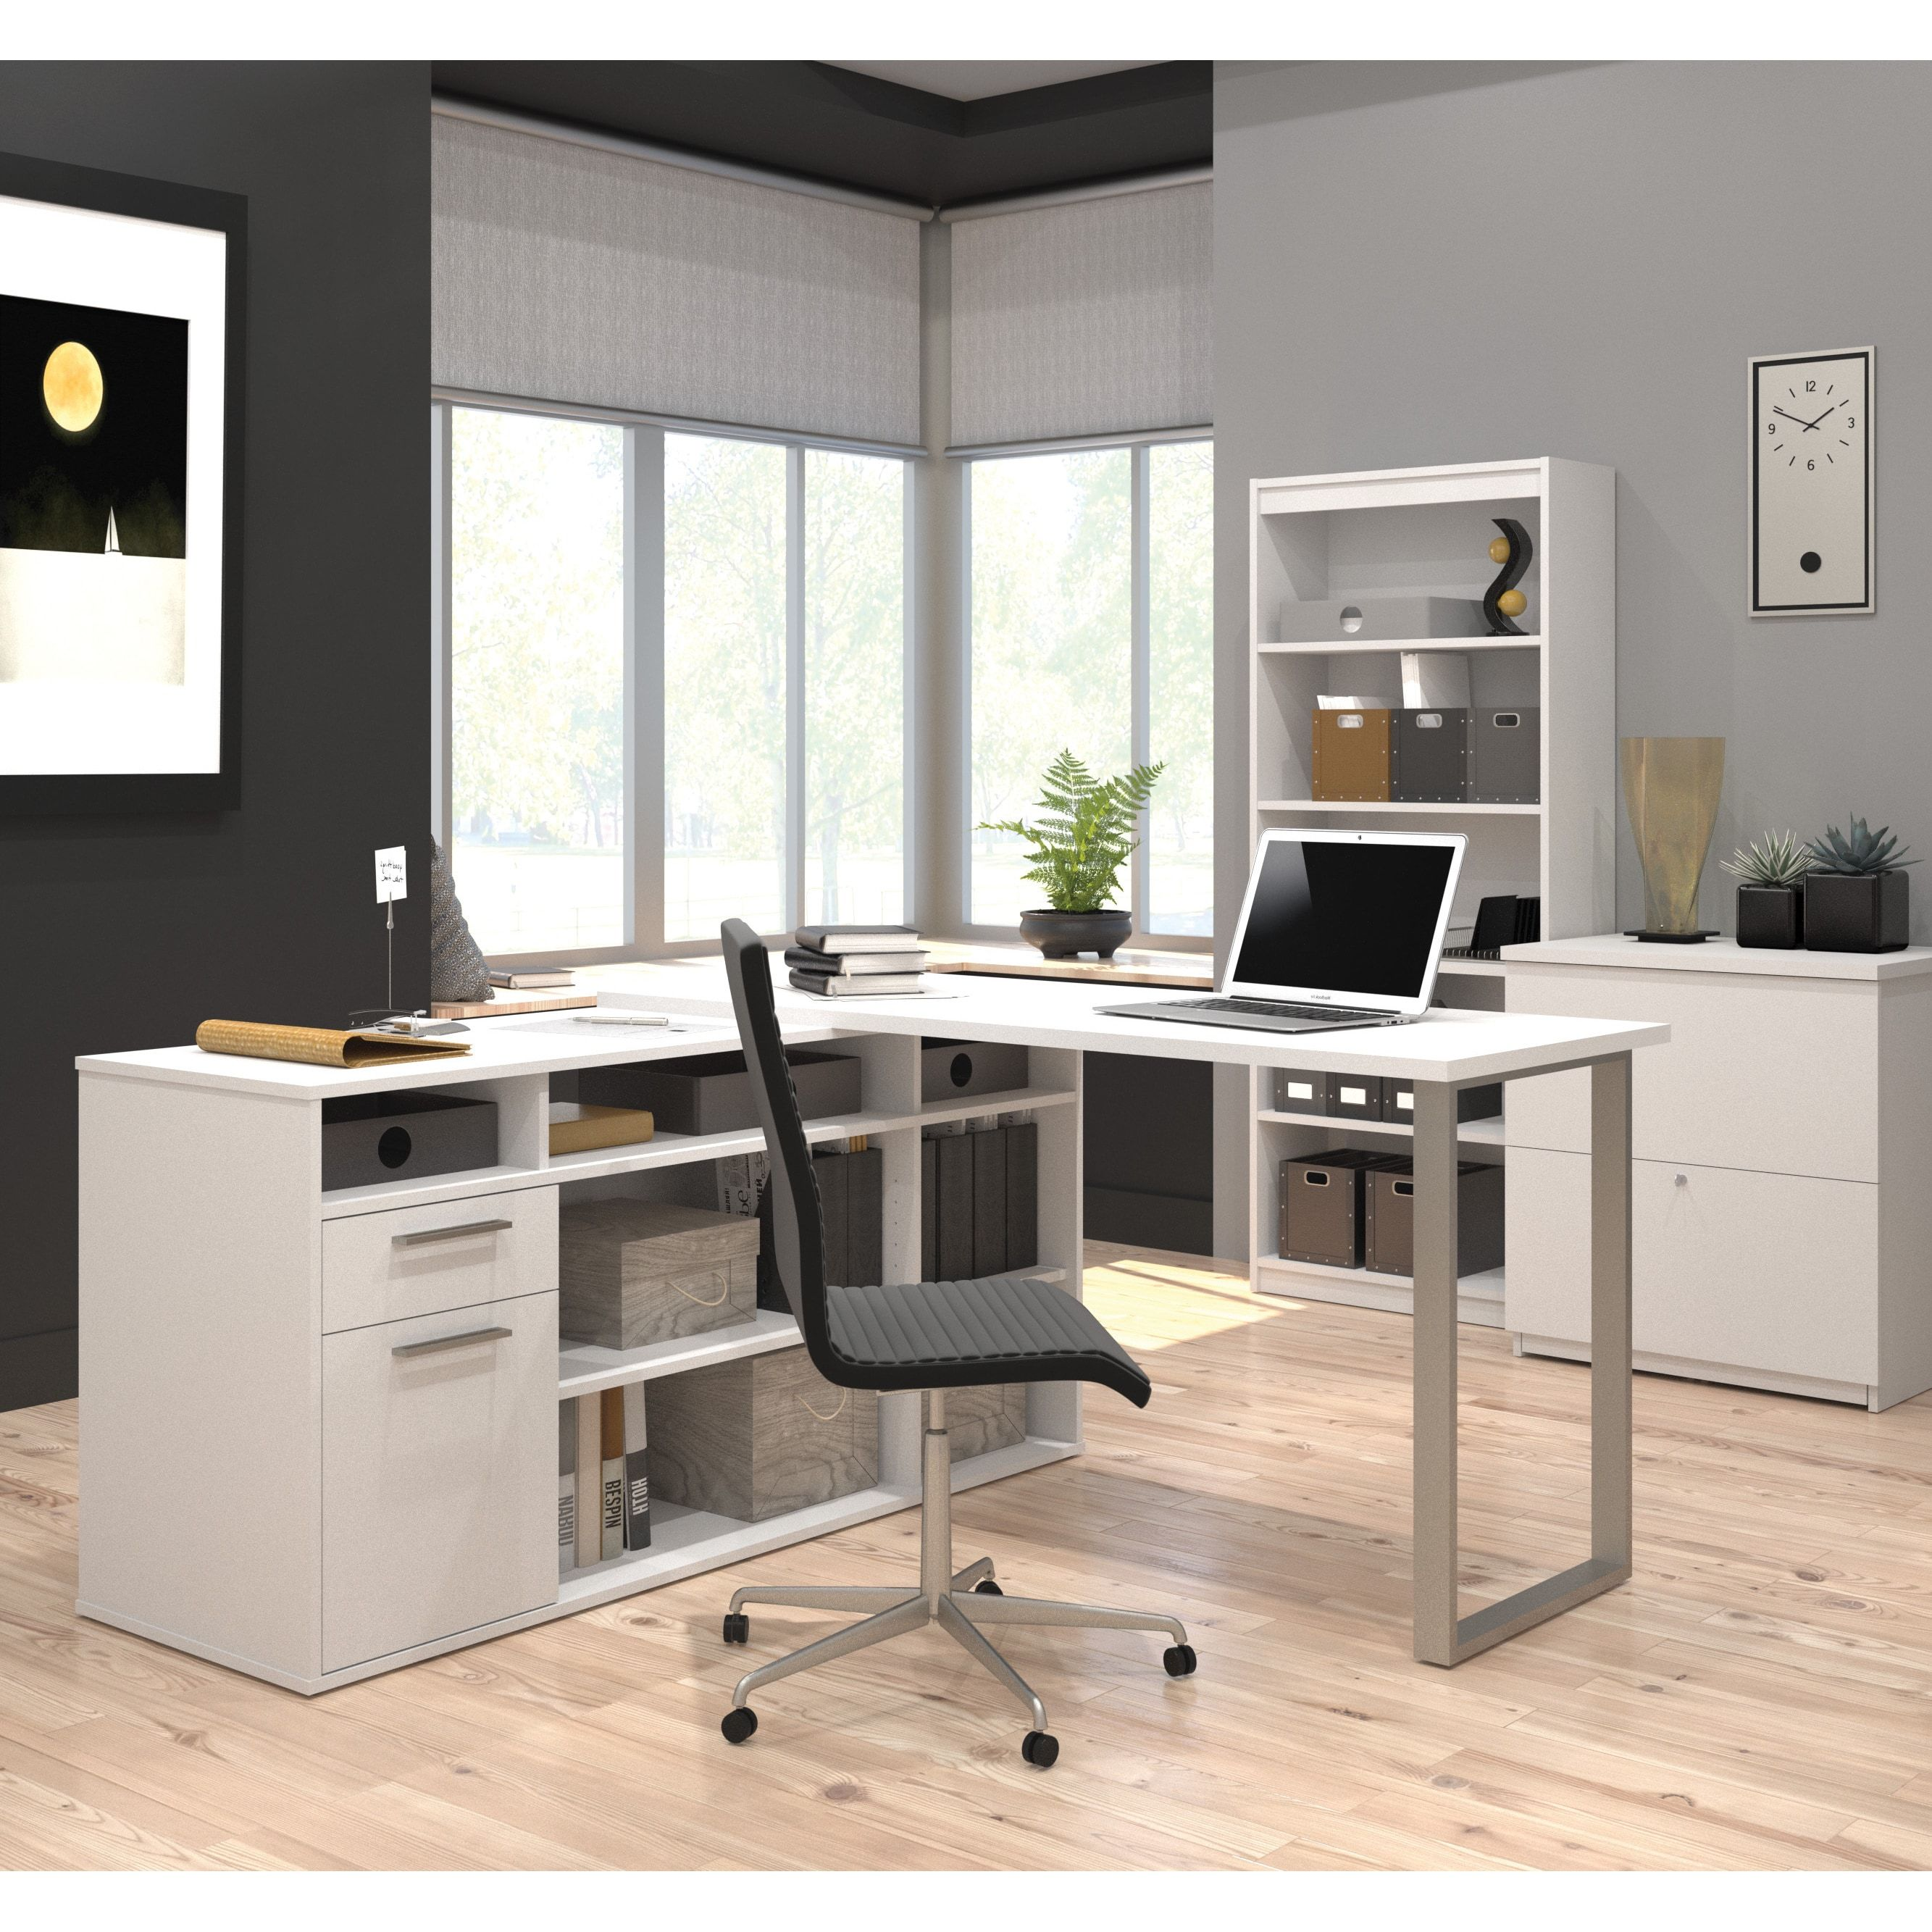 Bestar solay lshaped desk with lateral file and bookcase white